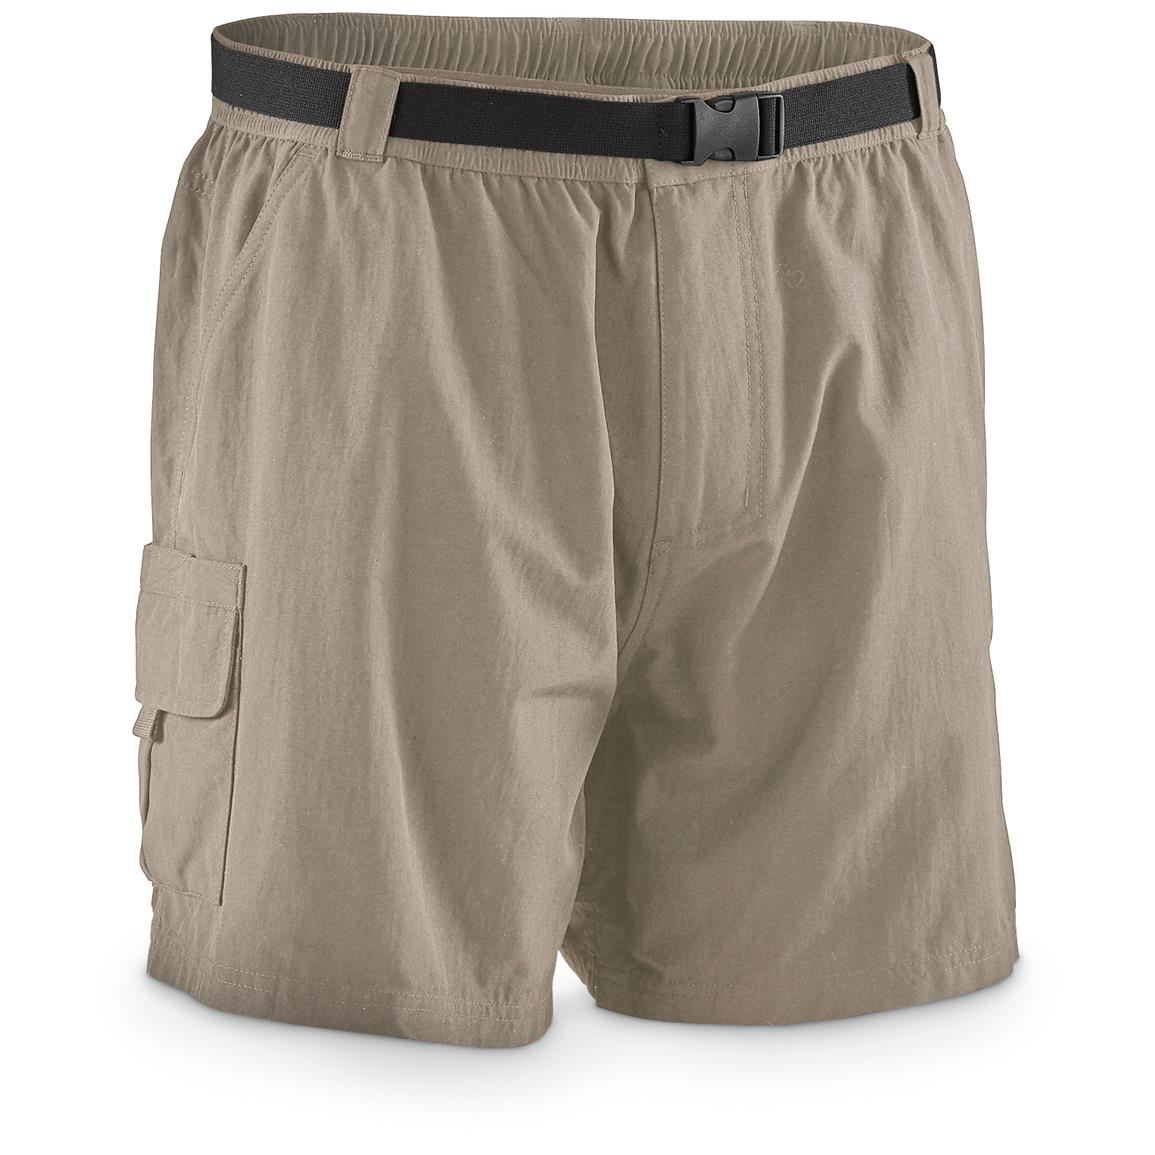 "Guide Gear Men's Cargo River Shorts, 6"" Inseam, Khaki"